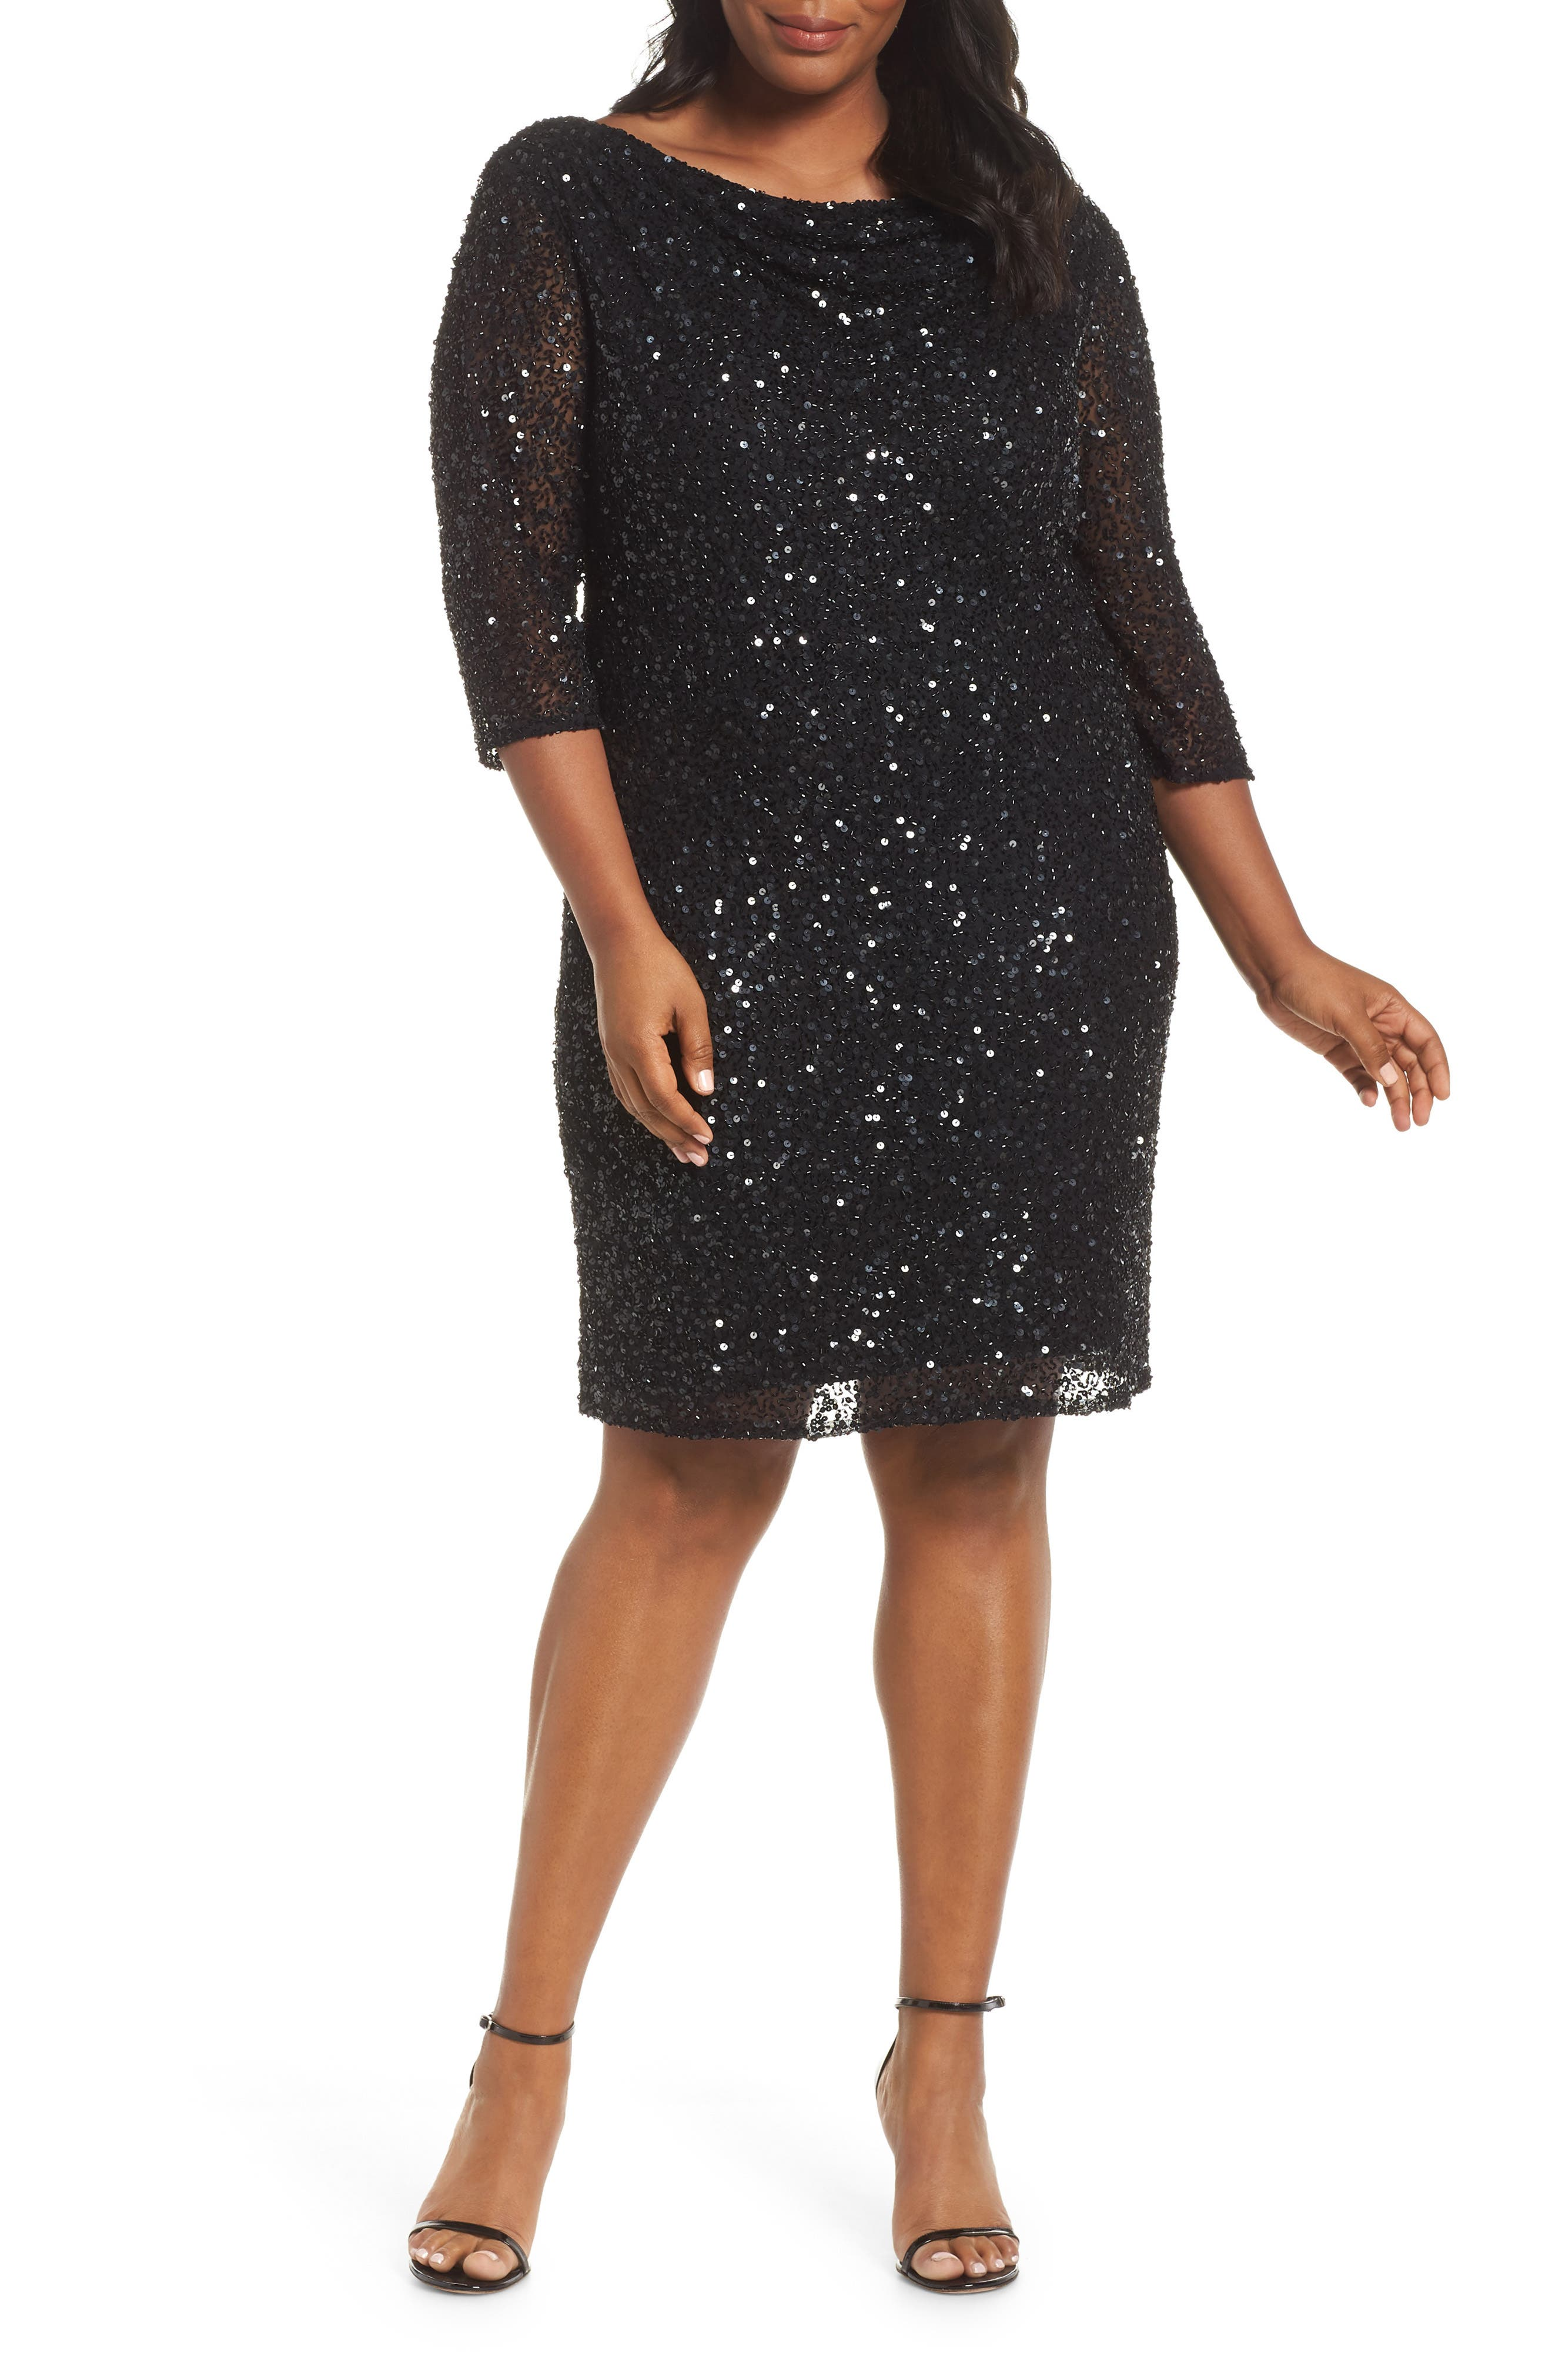 1920s Plus Size Flapper Dresses, Gatsby Dresses, Flapper Costumes Plus Size Womens Pisarro Nights Embellished Cocktail Dress $136.80 AT vintagedancer.com